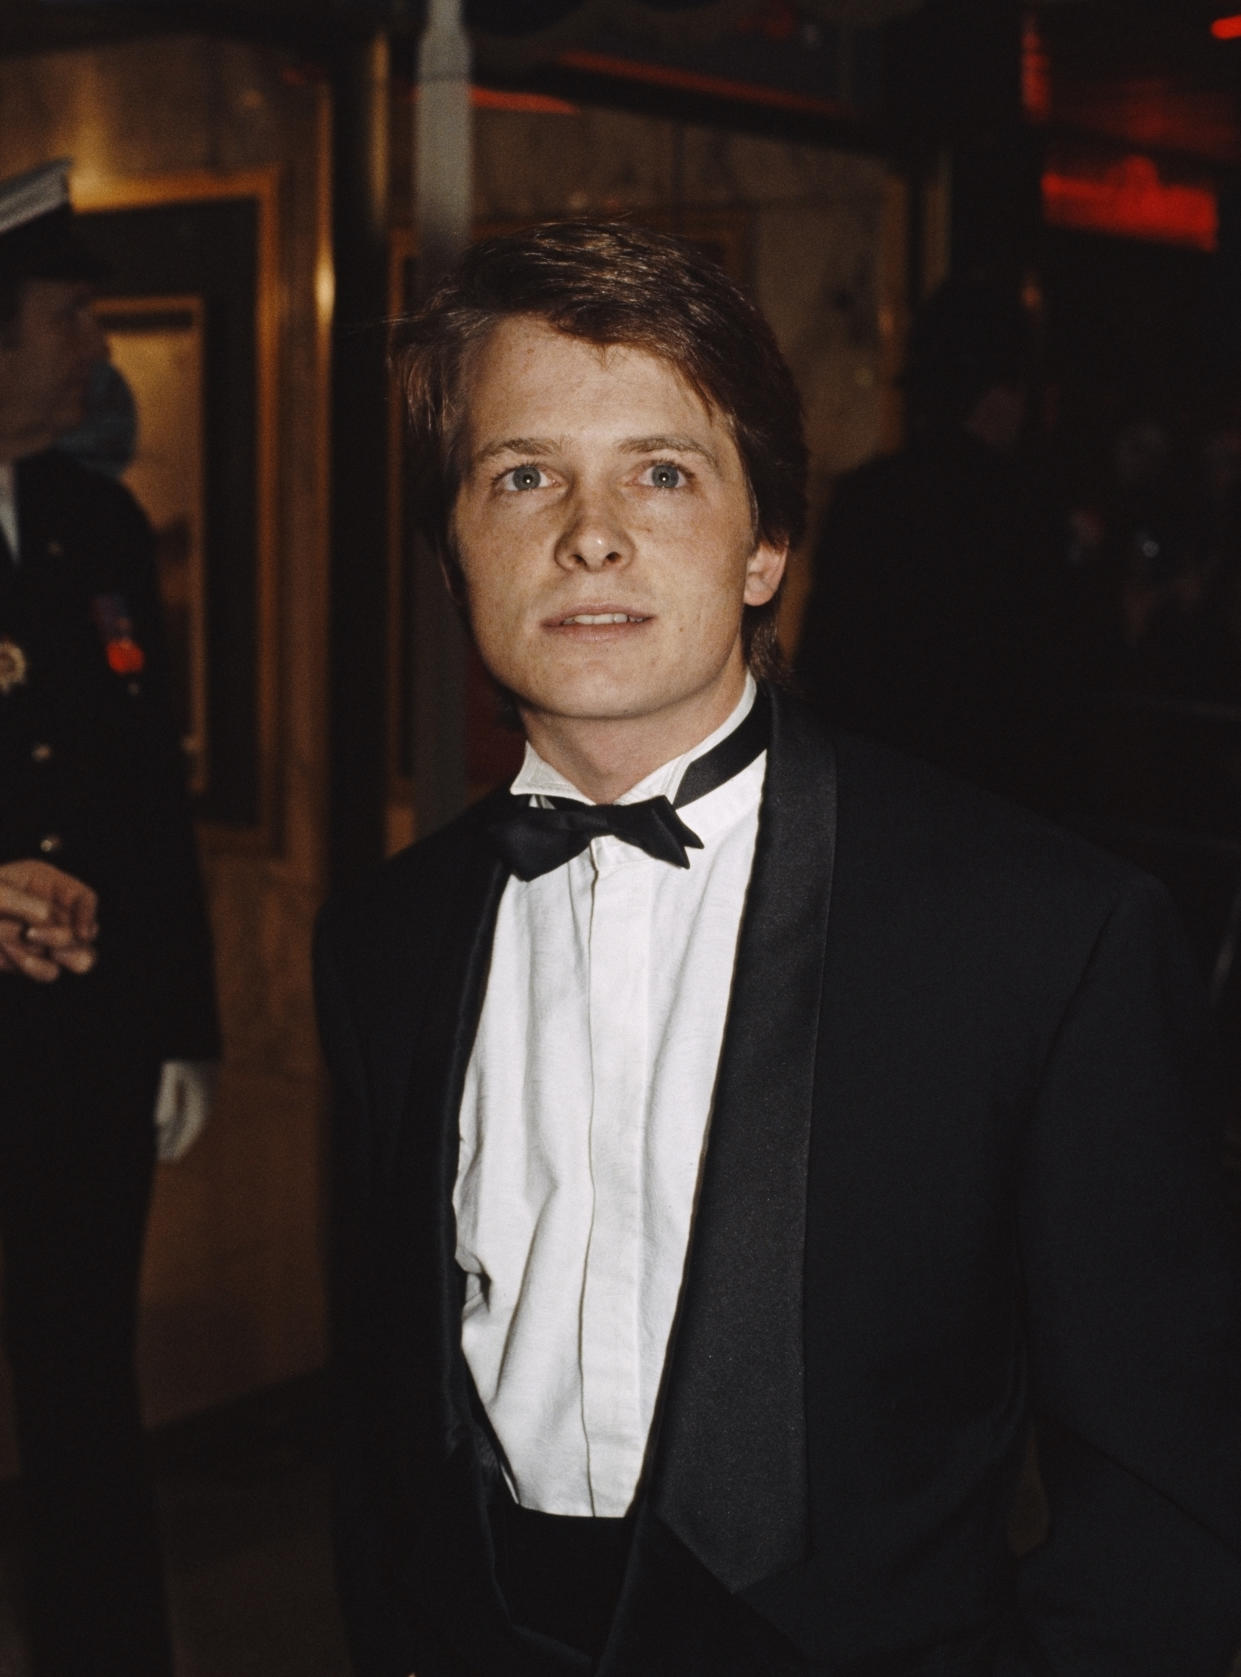 Canadian-American actor Michael J. Fox at the premiere of the film 'Back to the Future', in which he stars as time traveller Marty McFly, London, 3rd December 1985. (Photo by Fox Photos/Hulton Archive/Getty Images)